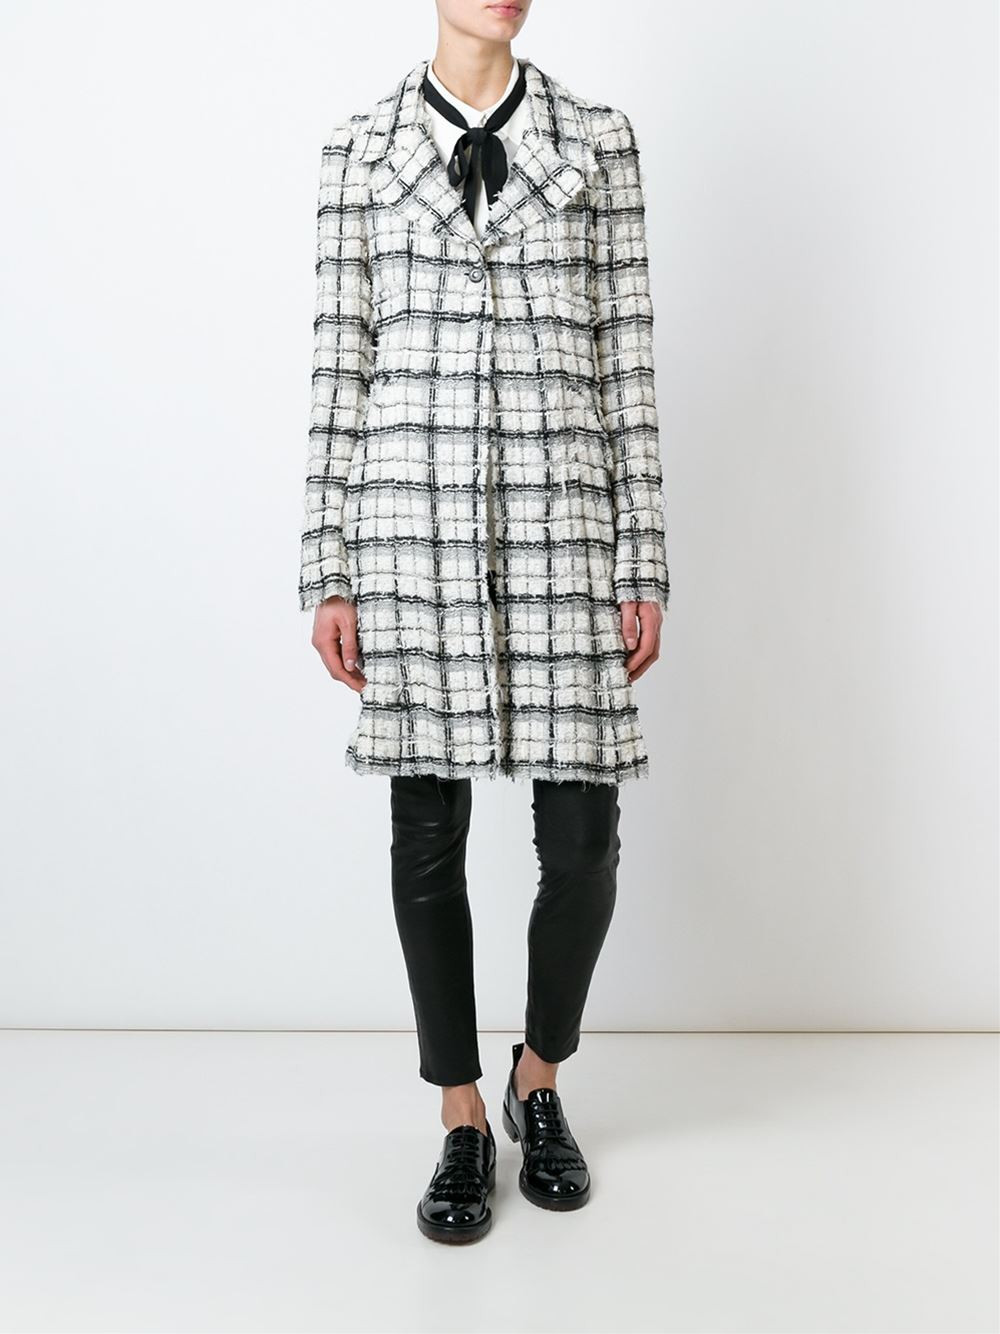 Chanel Vintage Checked Coat $5,631.83